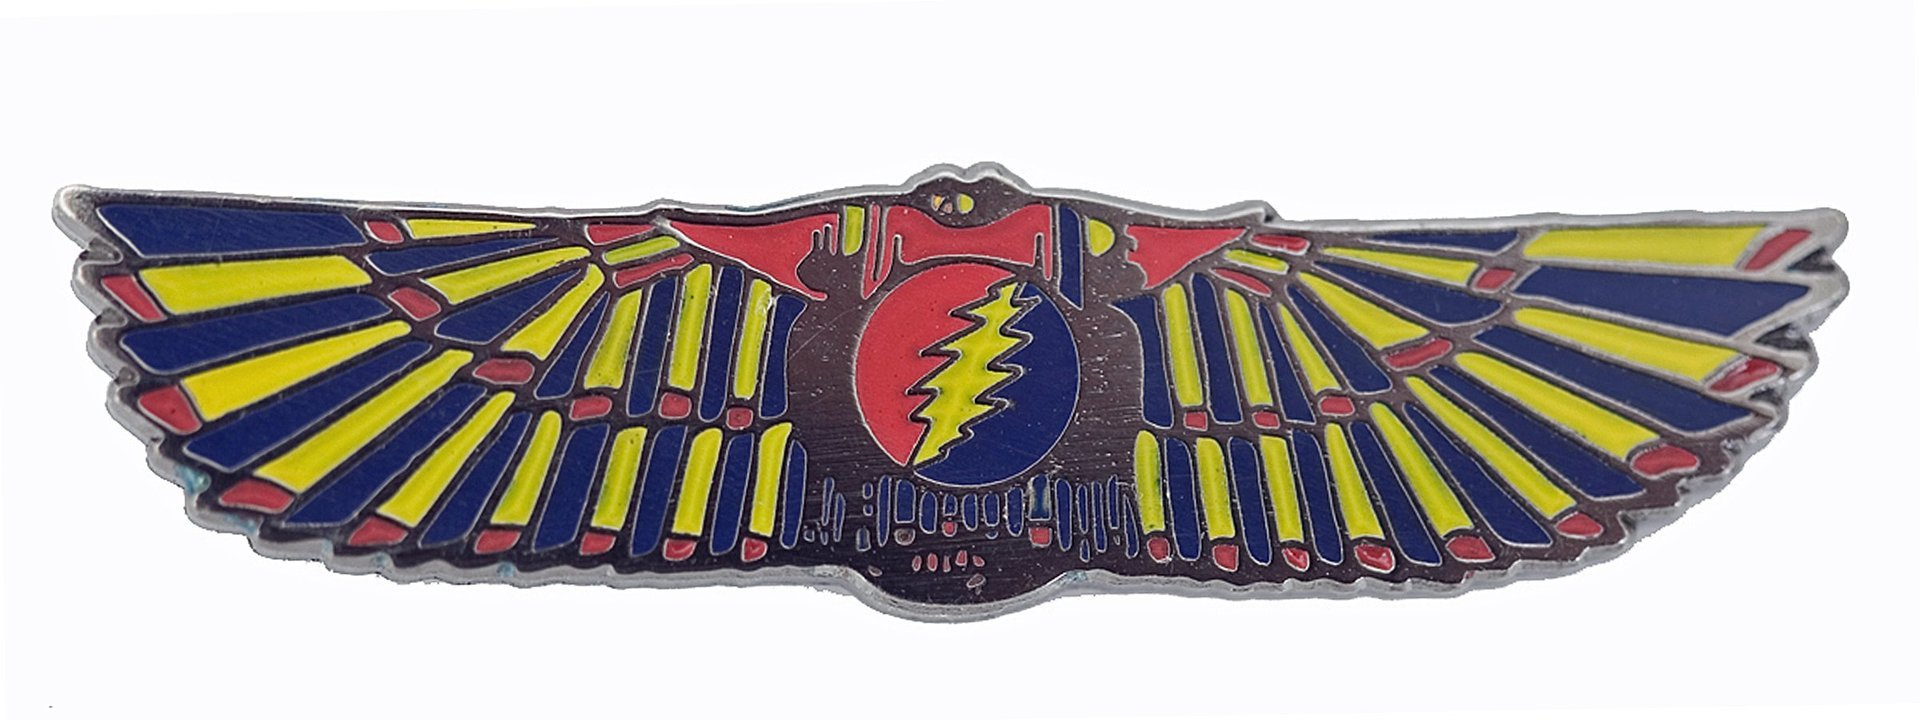 Grateful Dead - Egyptian Wings - Black - Yellow-Red-Blue Pin